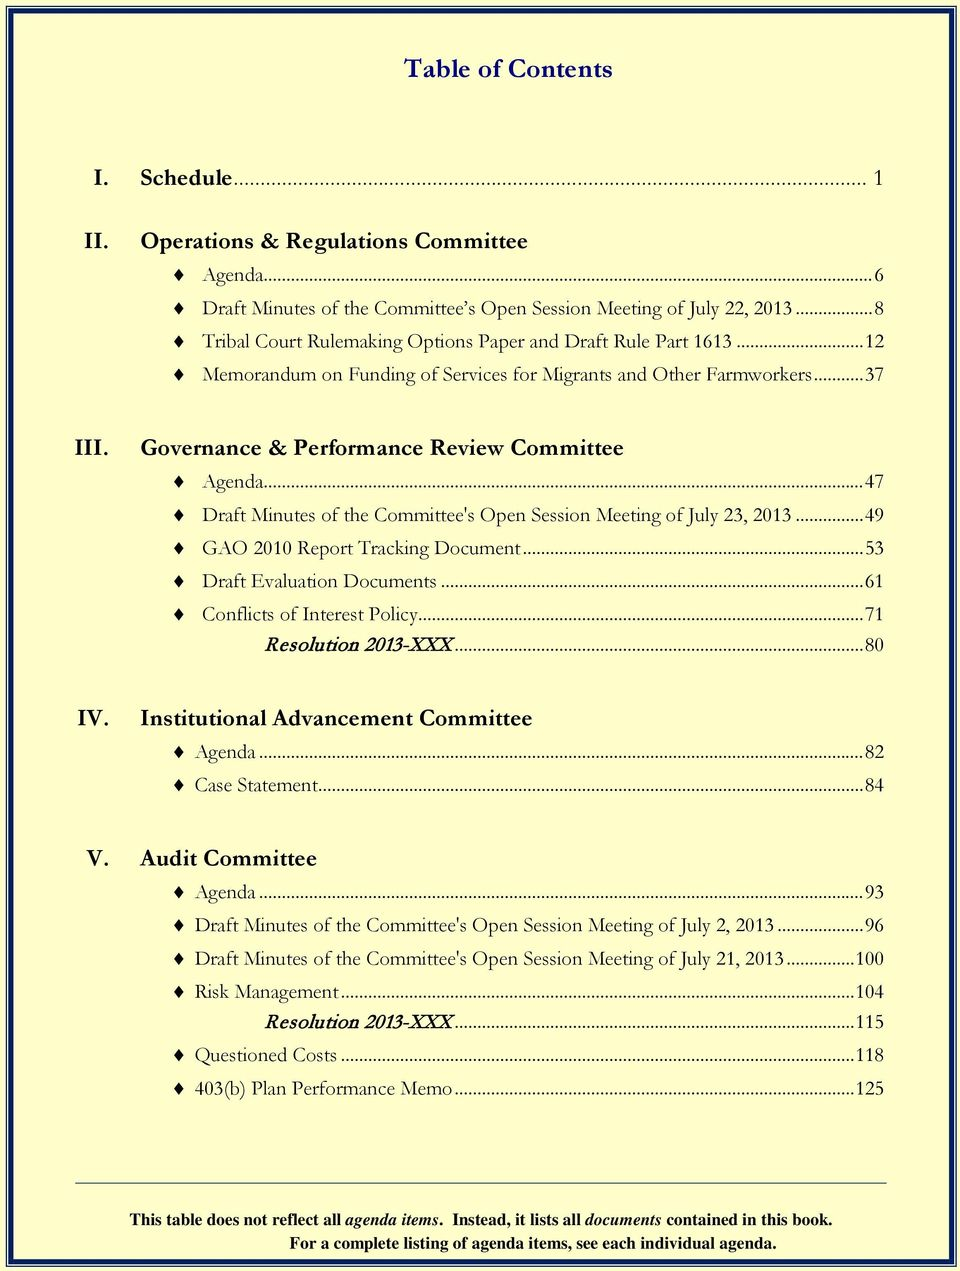 Governance & Performance Review Committee Agenda... 47 Draft Minutes of the Committee's Open Session Meeting of July 23, 2013... 49 GAO 2010 Report Tracking Document... 53 Draft Evaluation Documents.